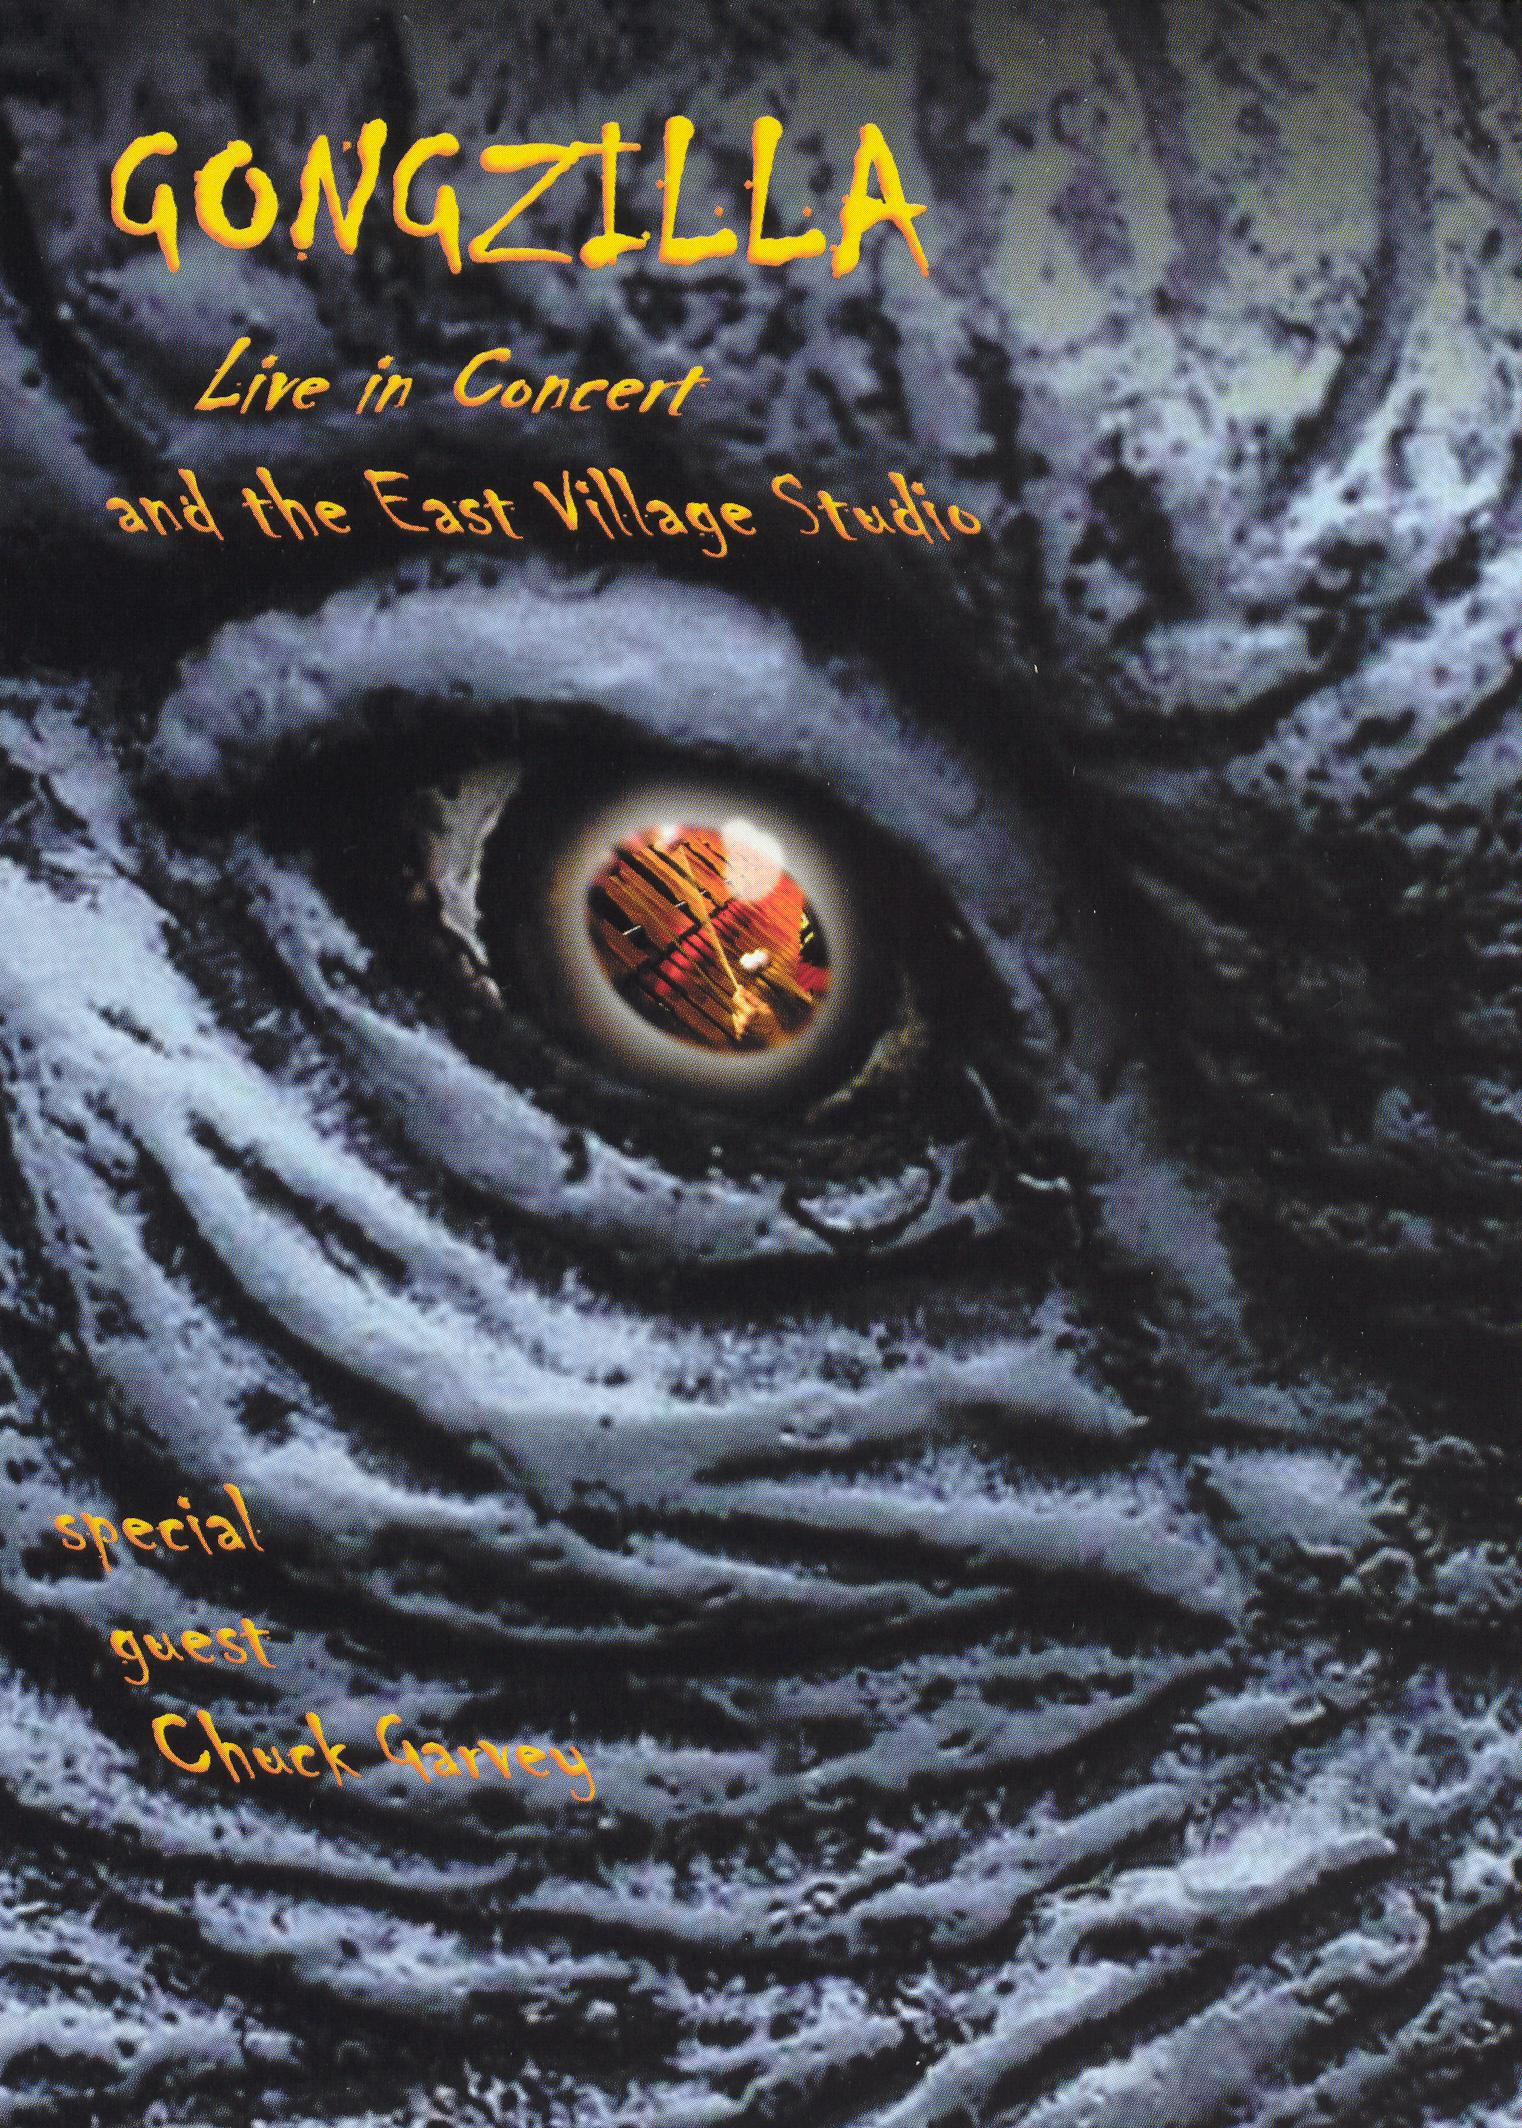 Gongzilla: Live in Concert and the East Village Studio